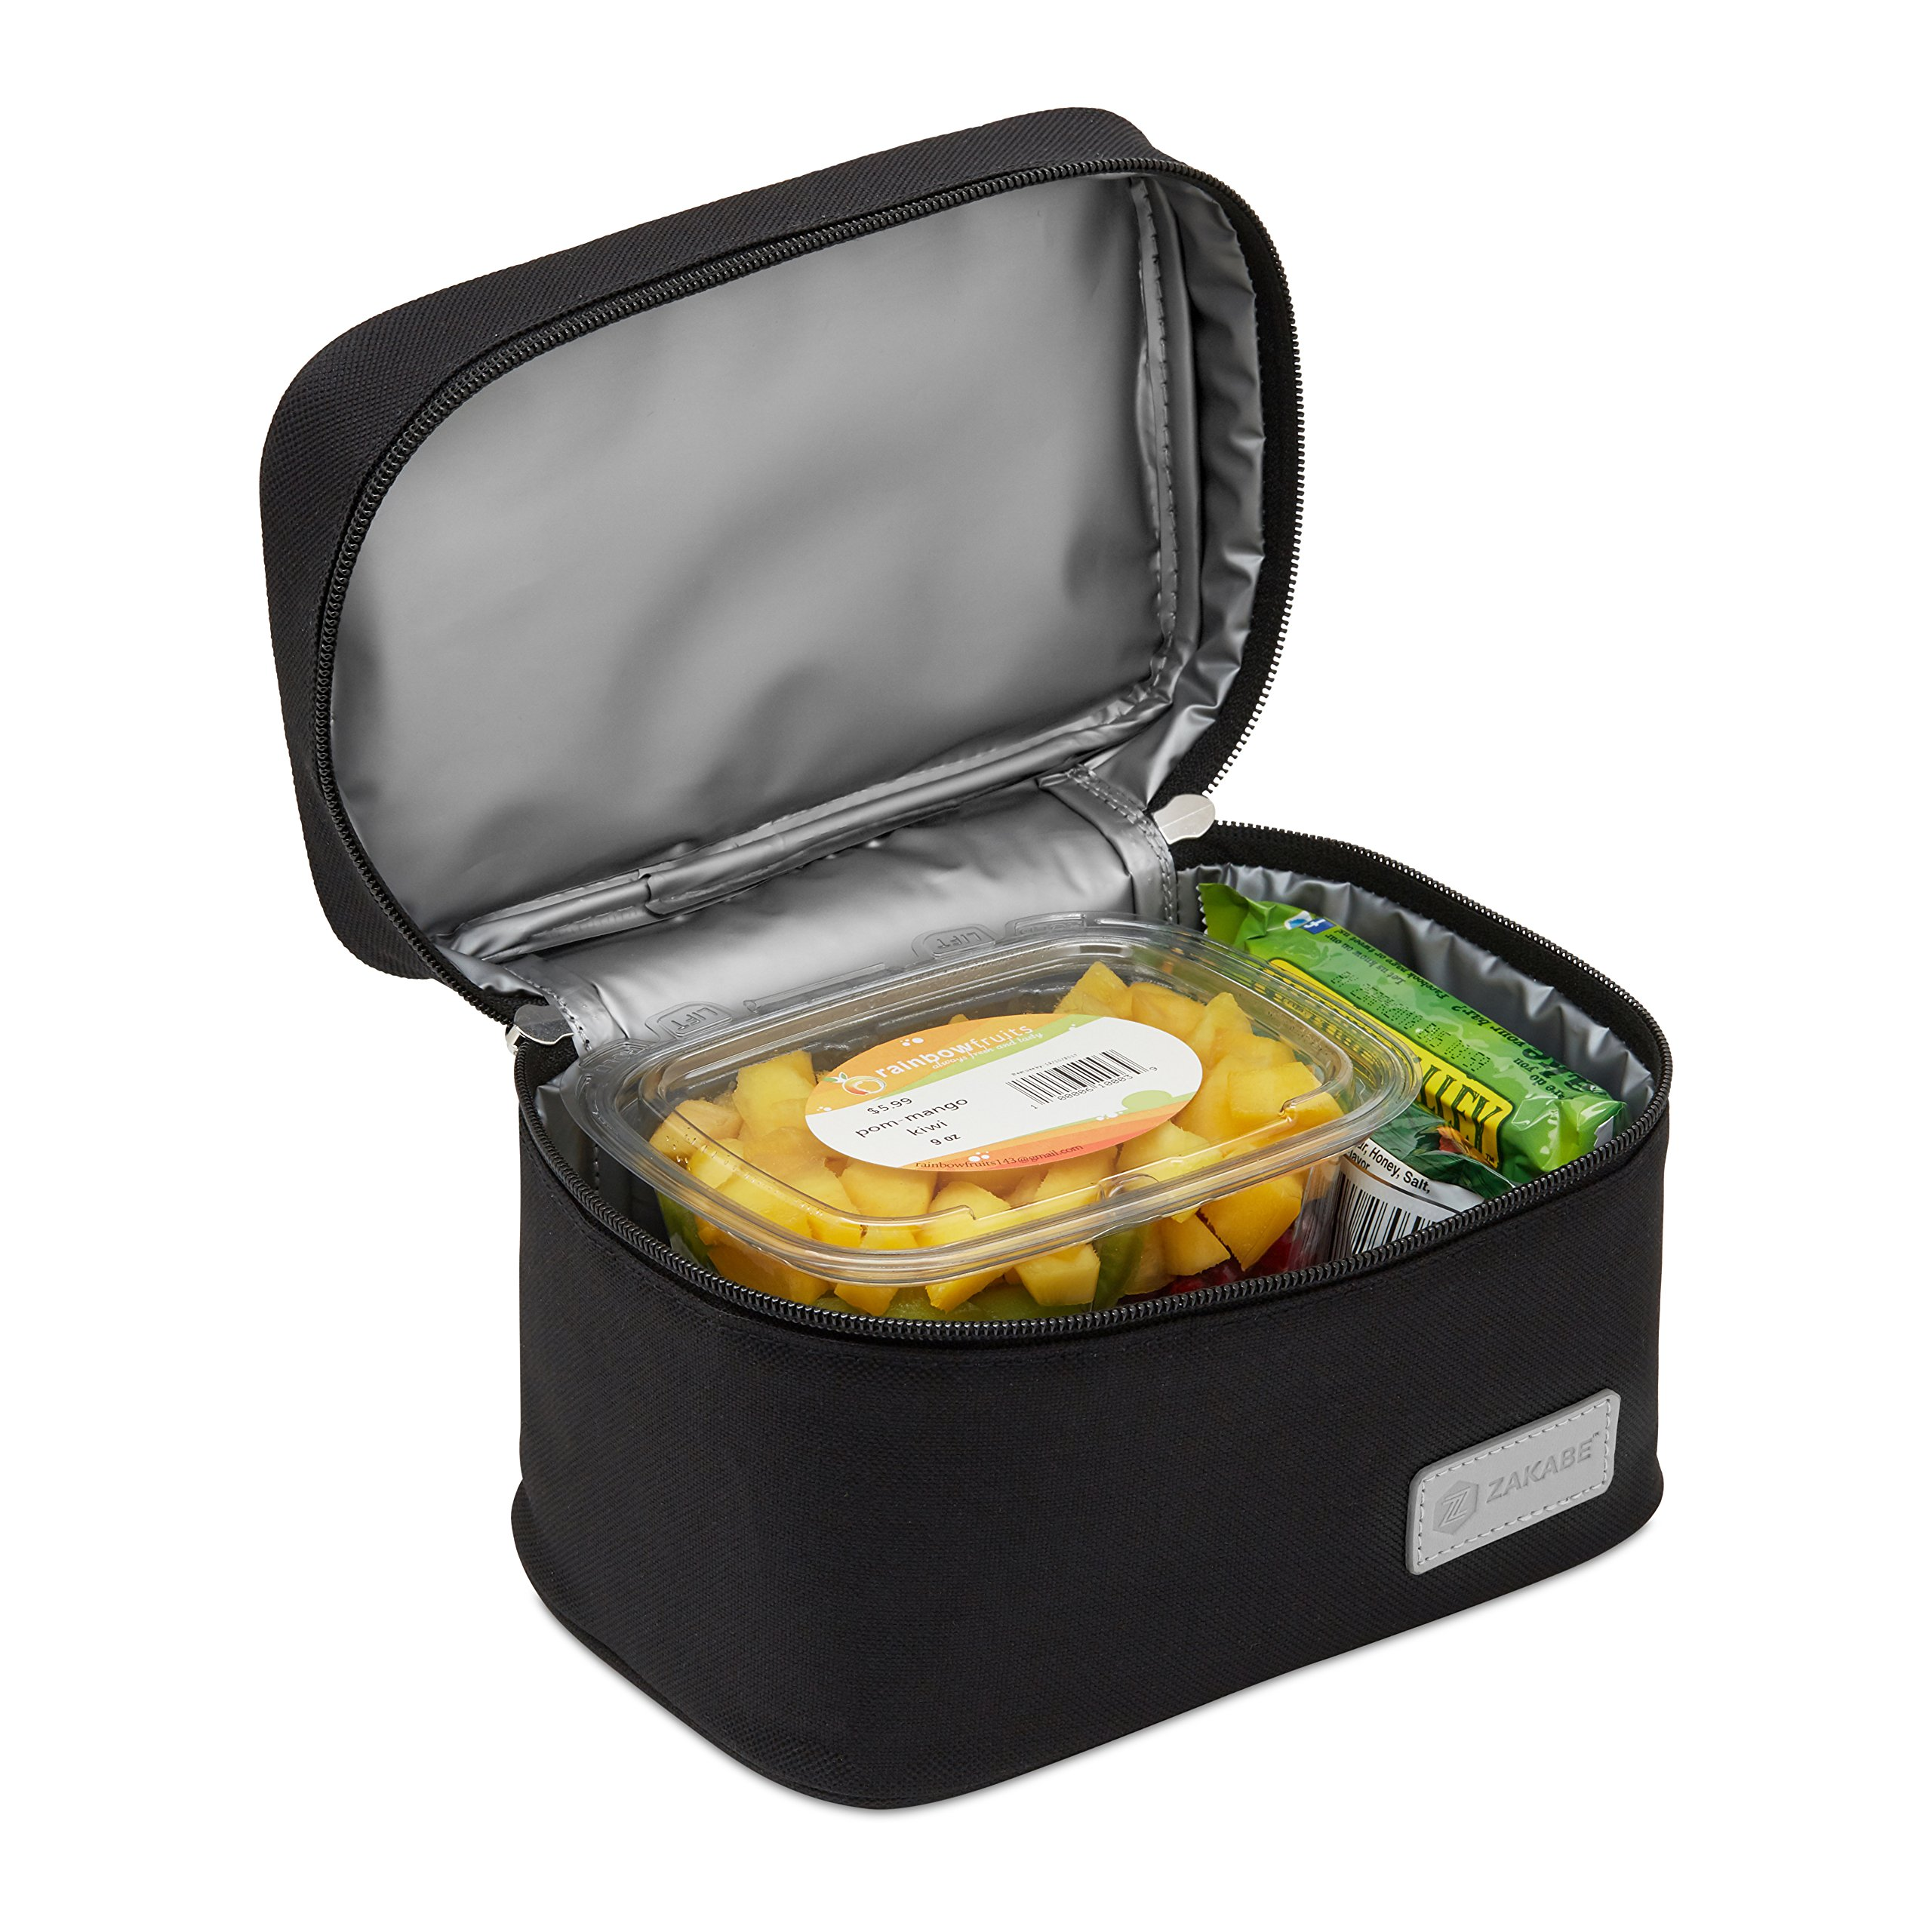 Zakabe Lunch Bag, Lunch Box, Cooler Bag, Set of 2 Sizes, Insulated, for Women, Kids, Adults, Men, Work or School - Black by Zakabe (Image #6)